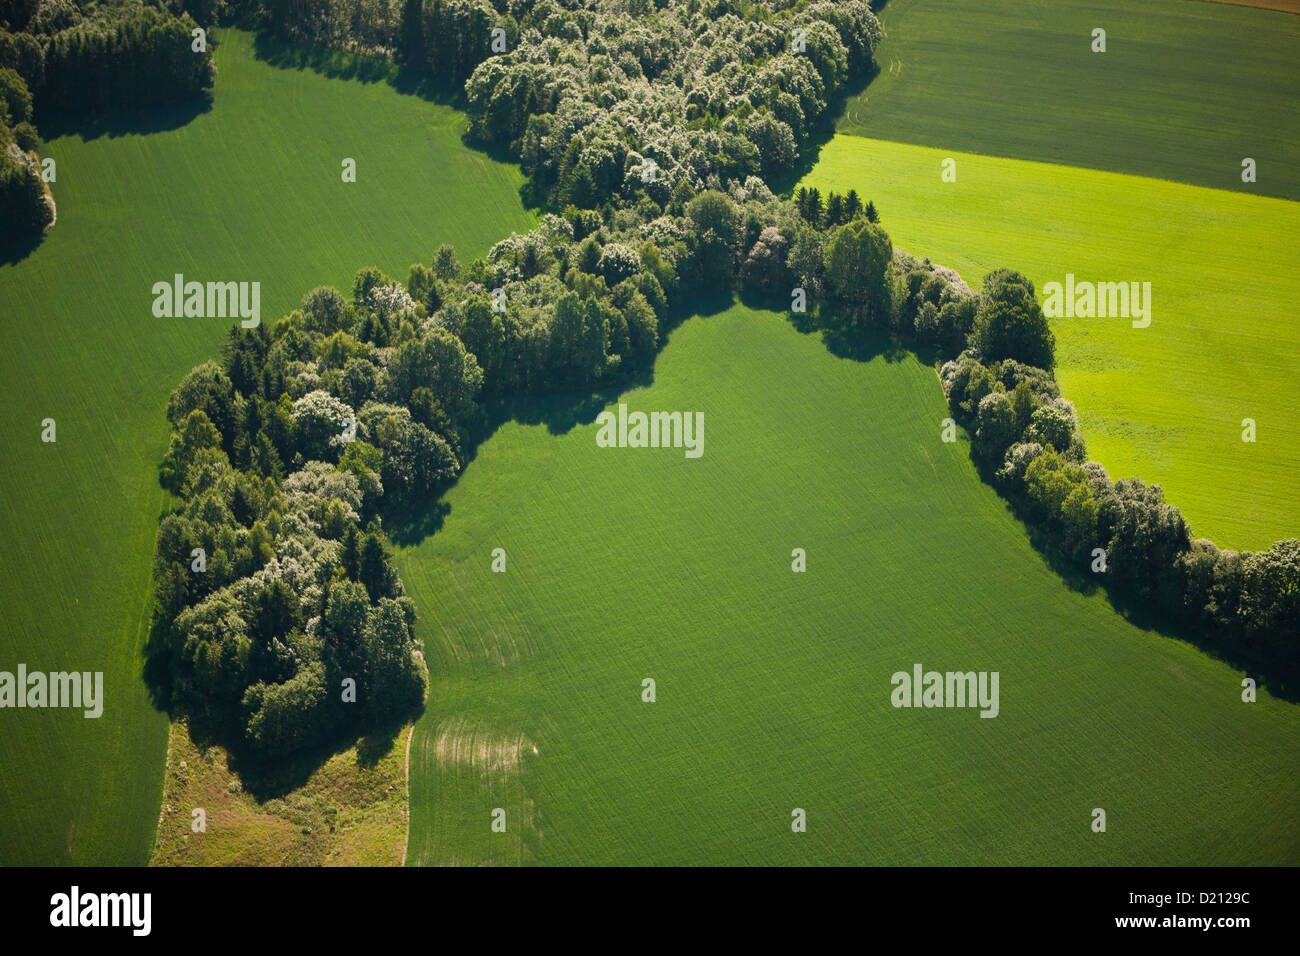 Aerial photo of green and yellow fields and forest. near Lillestrøm, southeastern Norway. - Stock Image